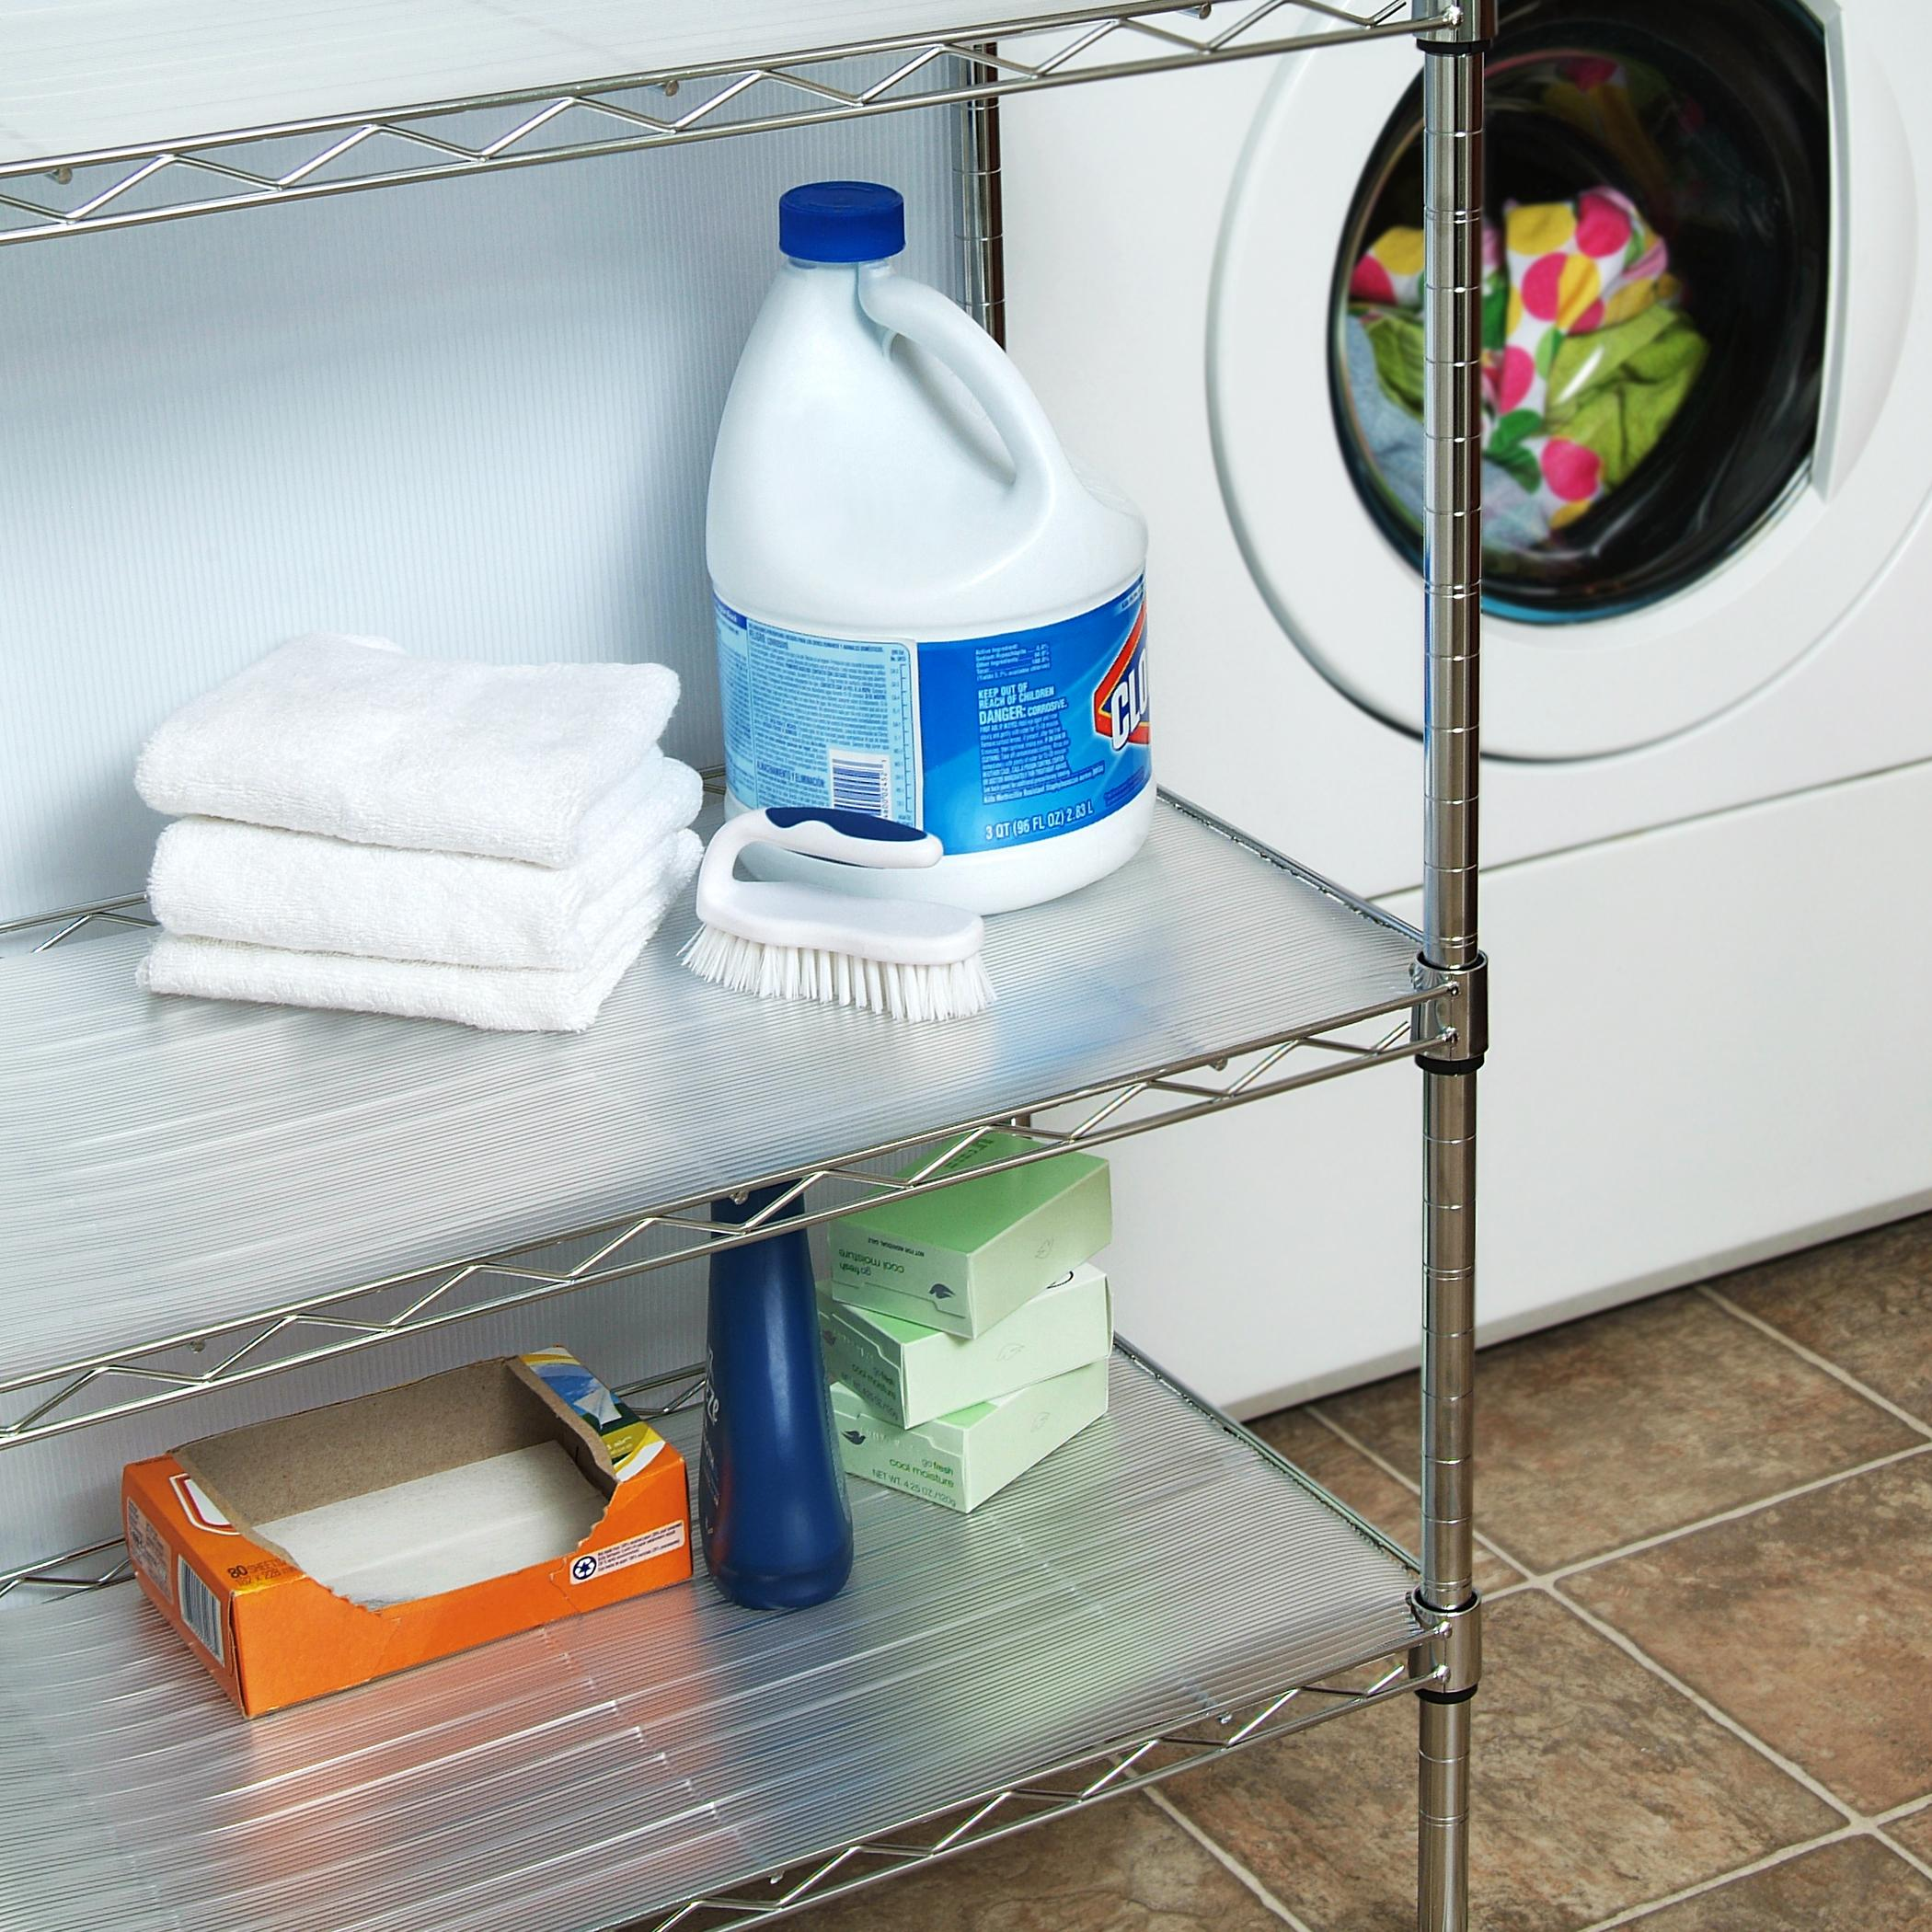 What Is The Best Shelf Liner For Kitchen Cabinets: Con-Tact Brand Non-Adhesive Luxury Fabric